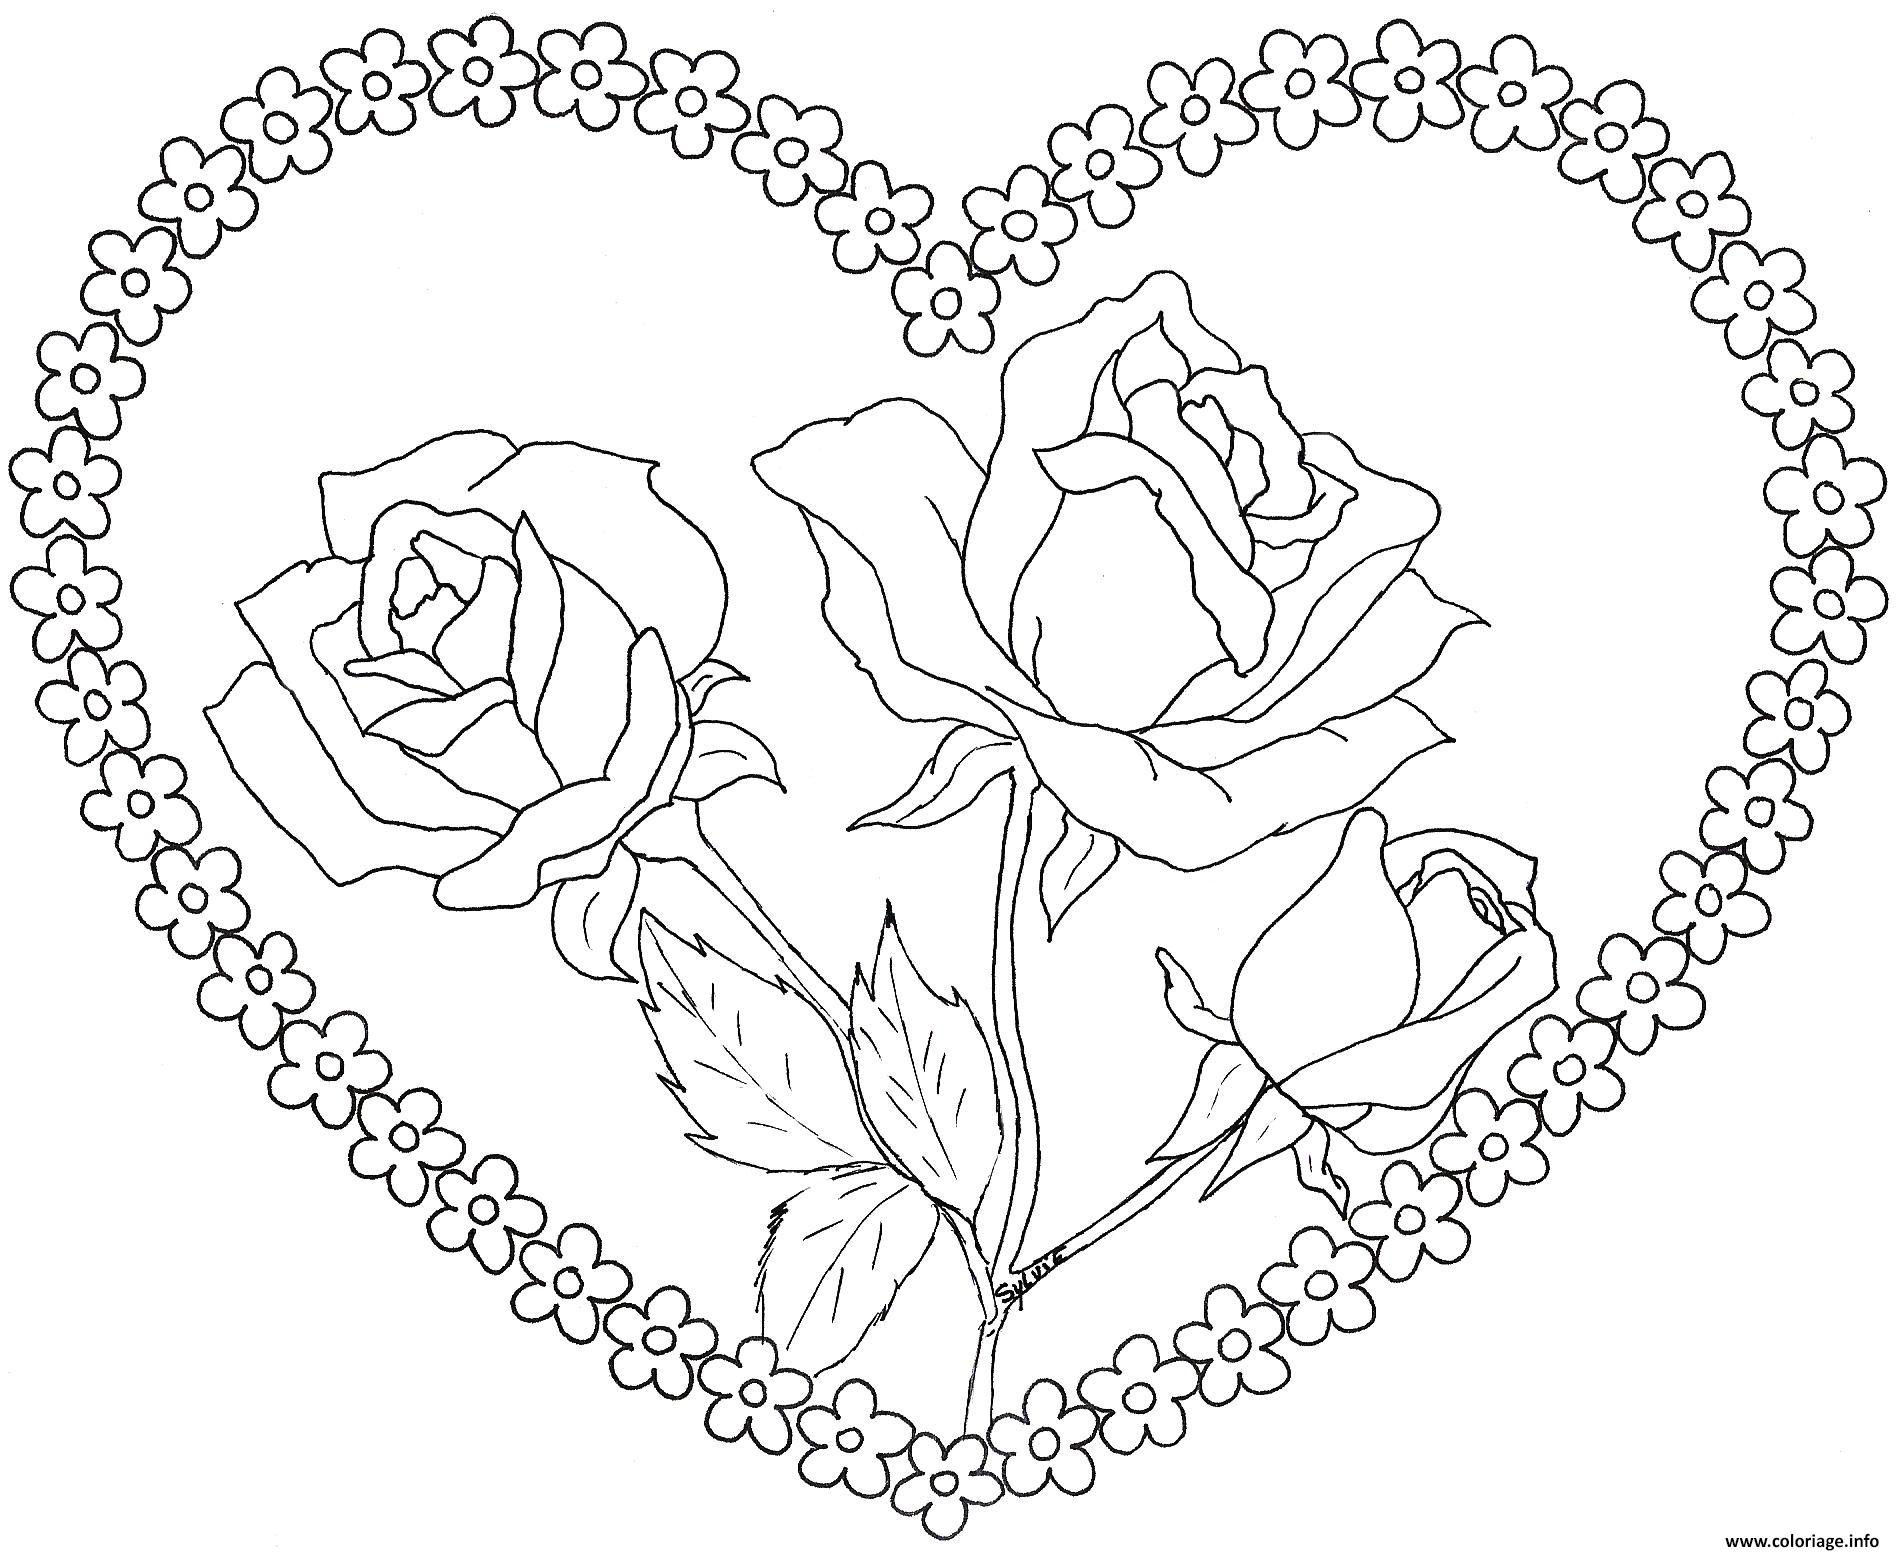 coloriage rose et coeur 1 dessin. Black Bedroom Furniture Sets. Home Design Ideas